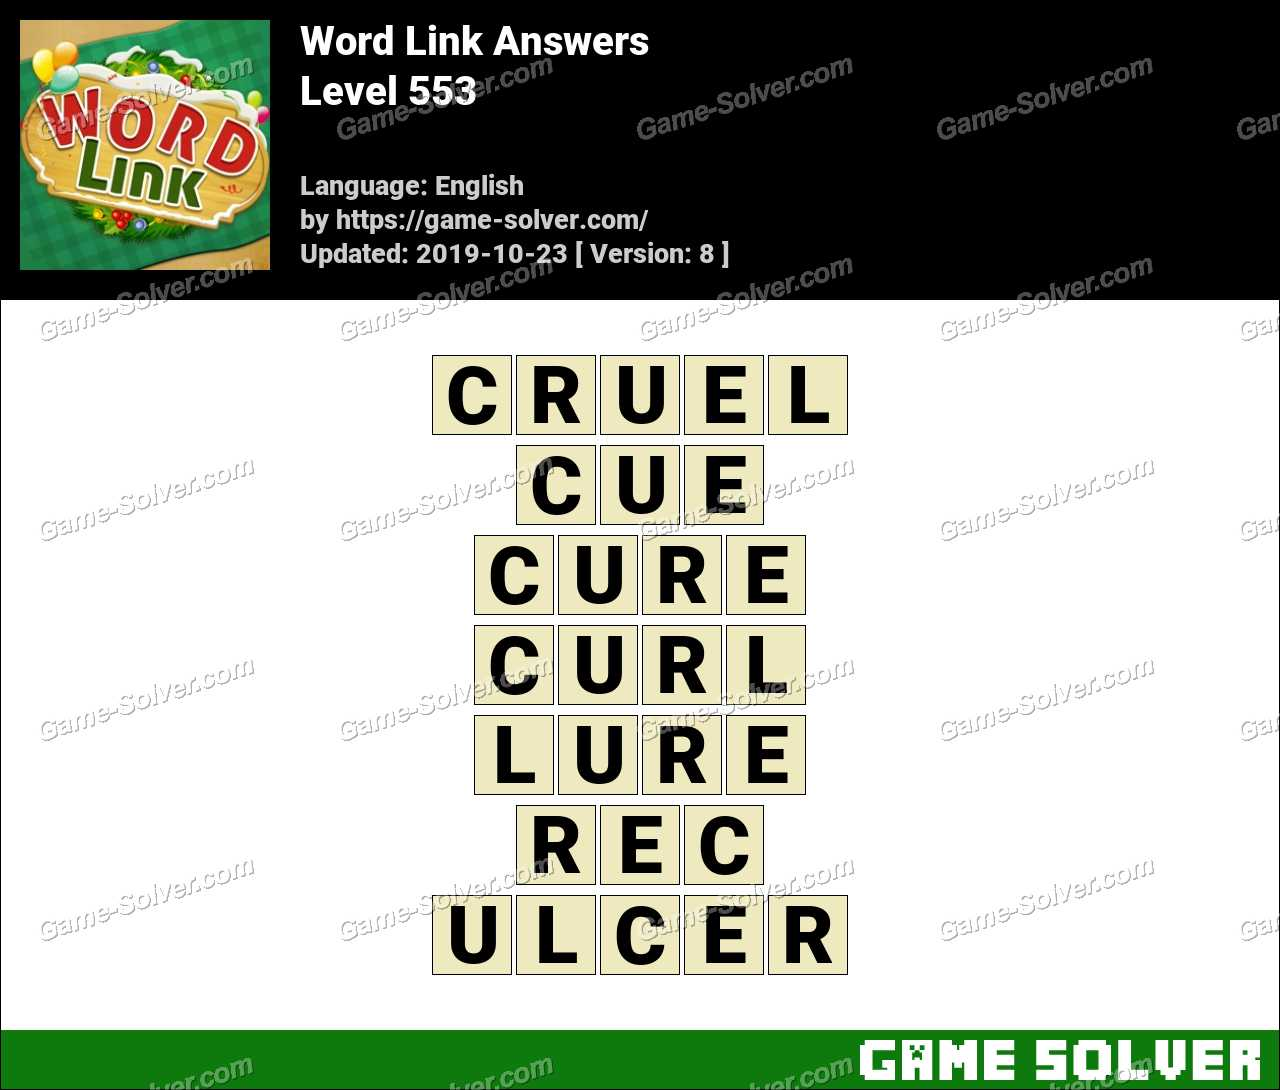 Word Link Level 553 Answers